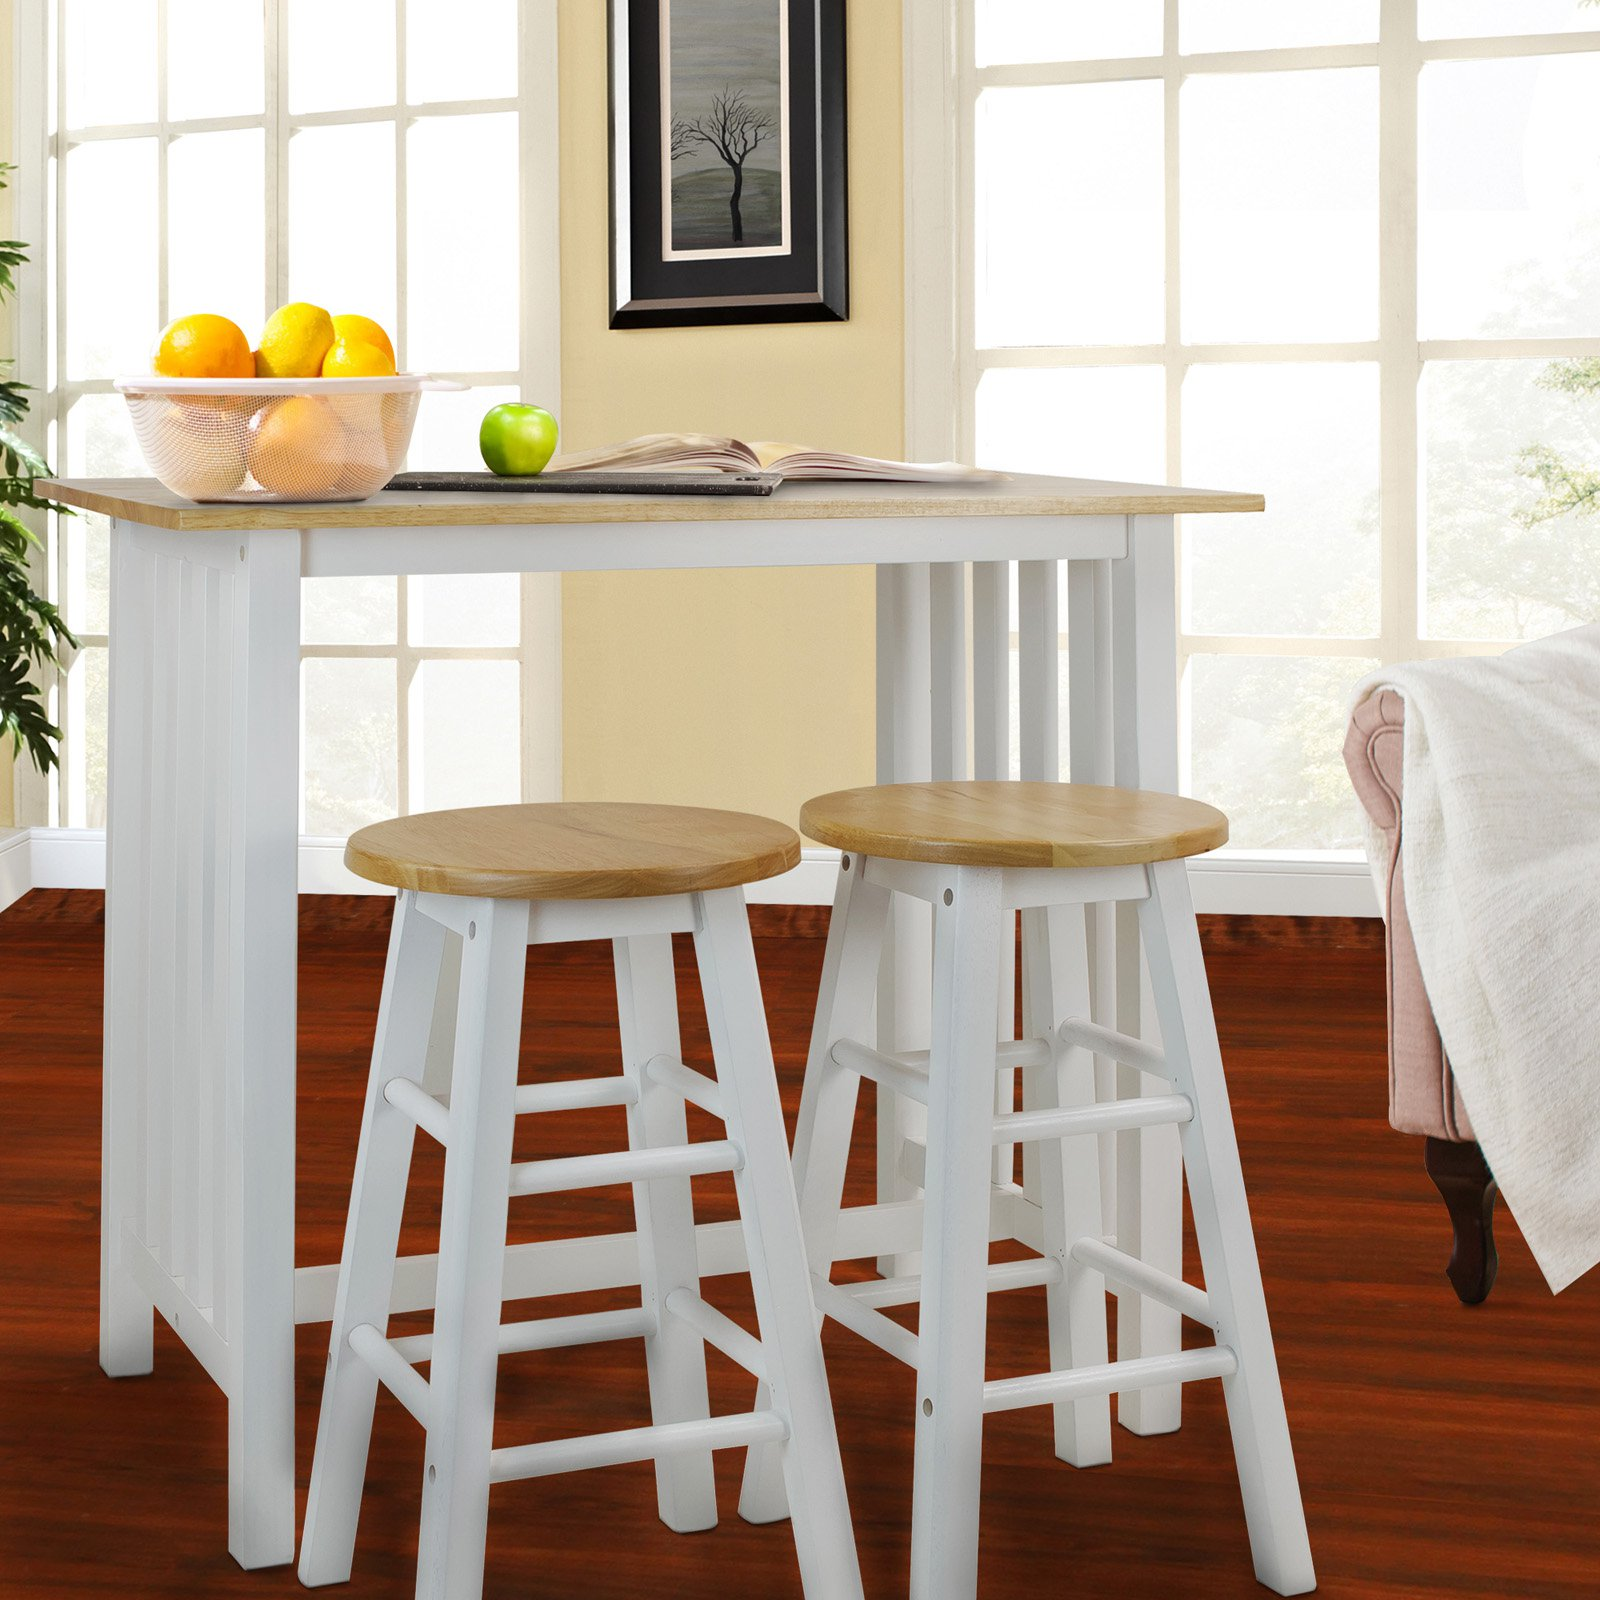 3pcs Breakfast Set made with Solid Wood-White